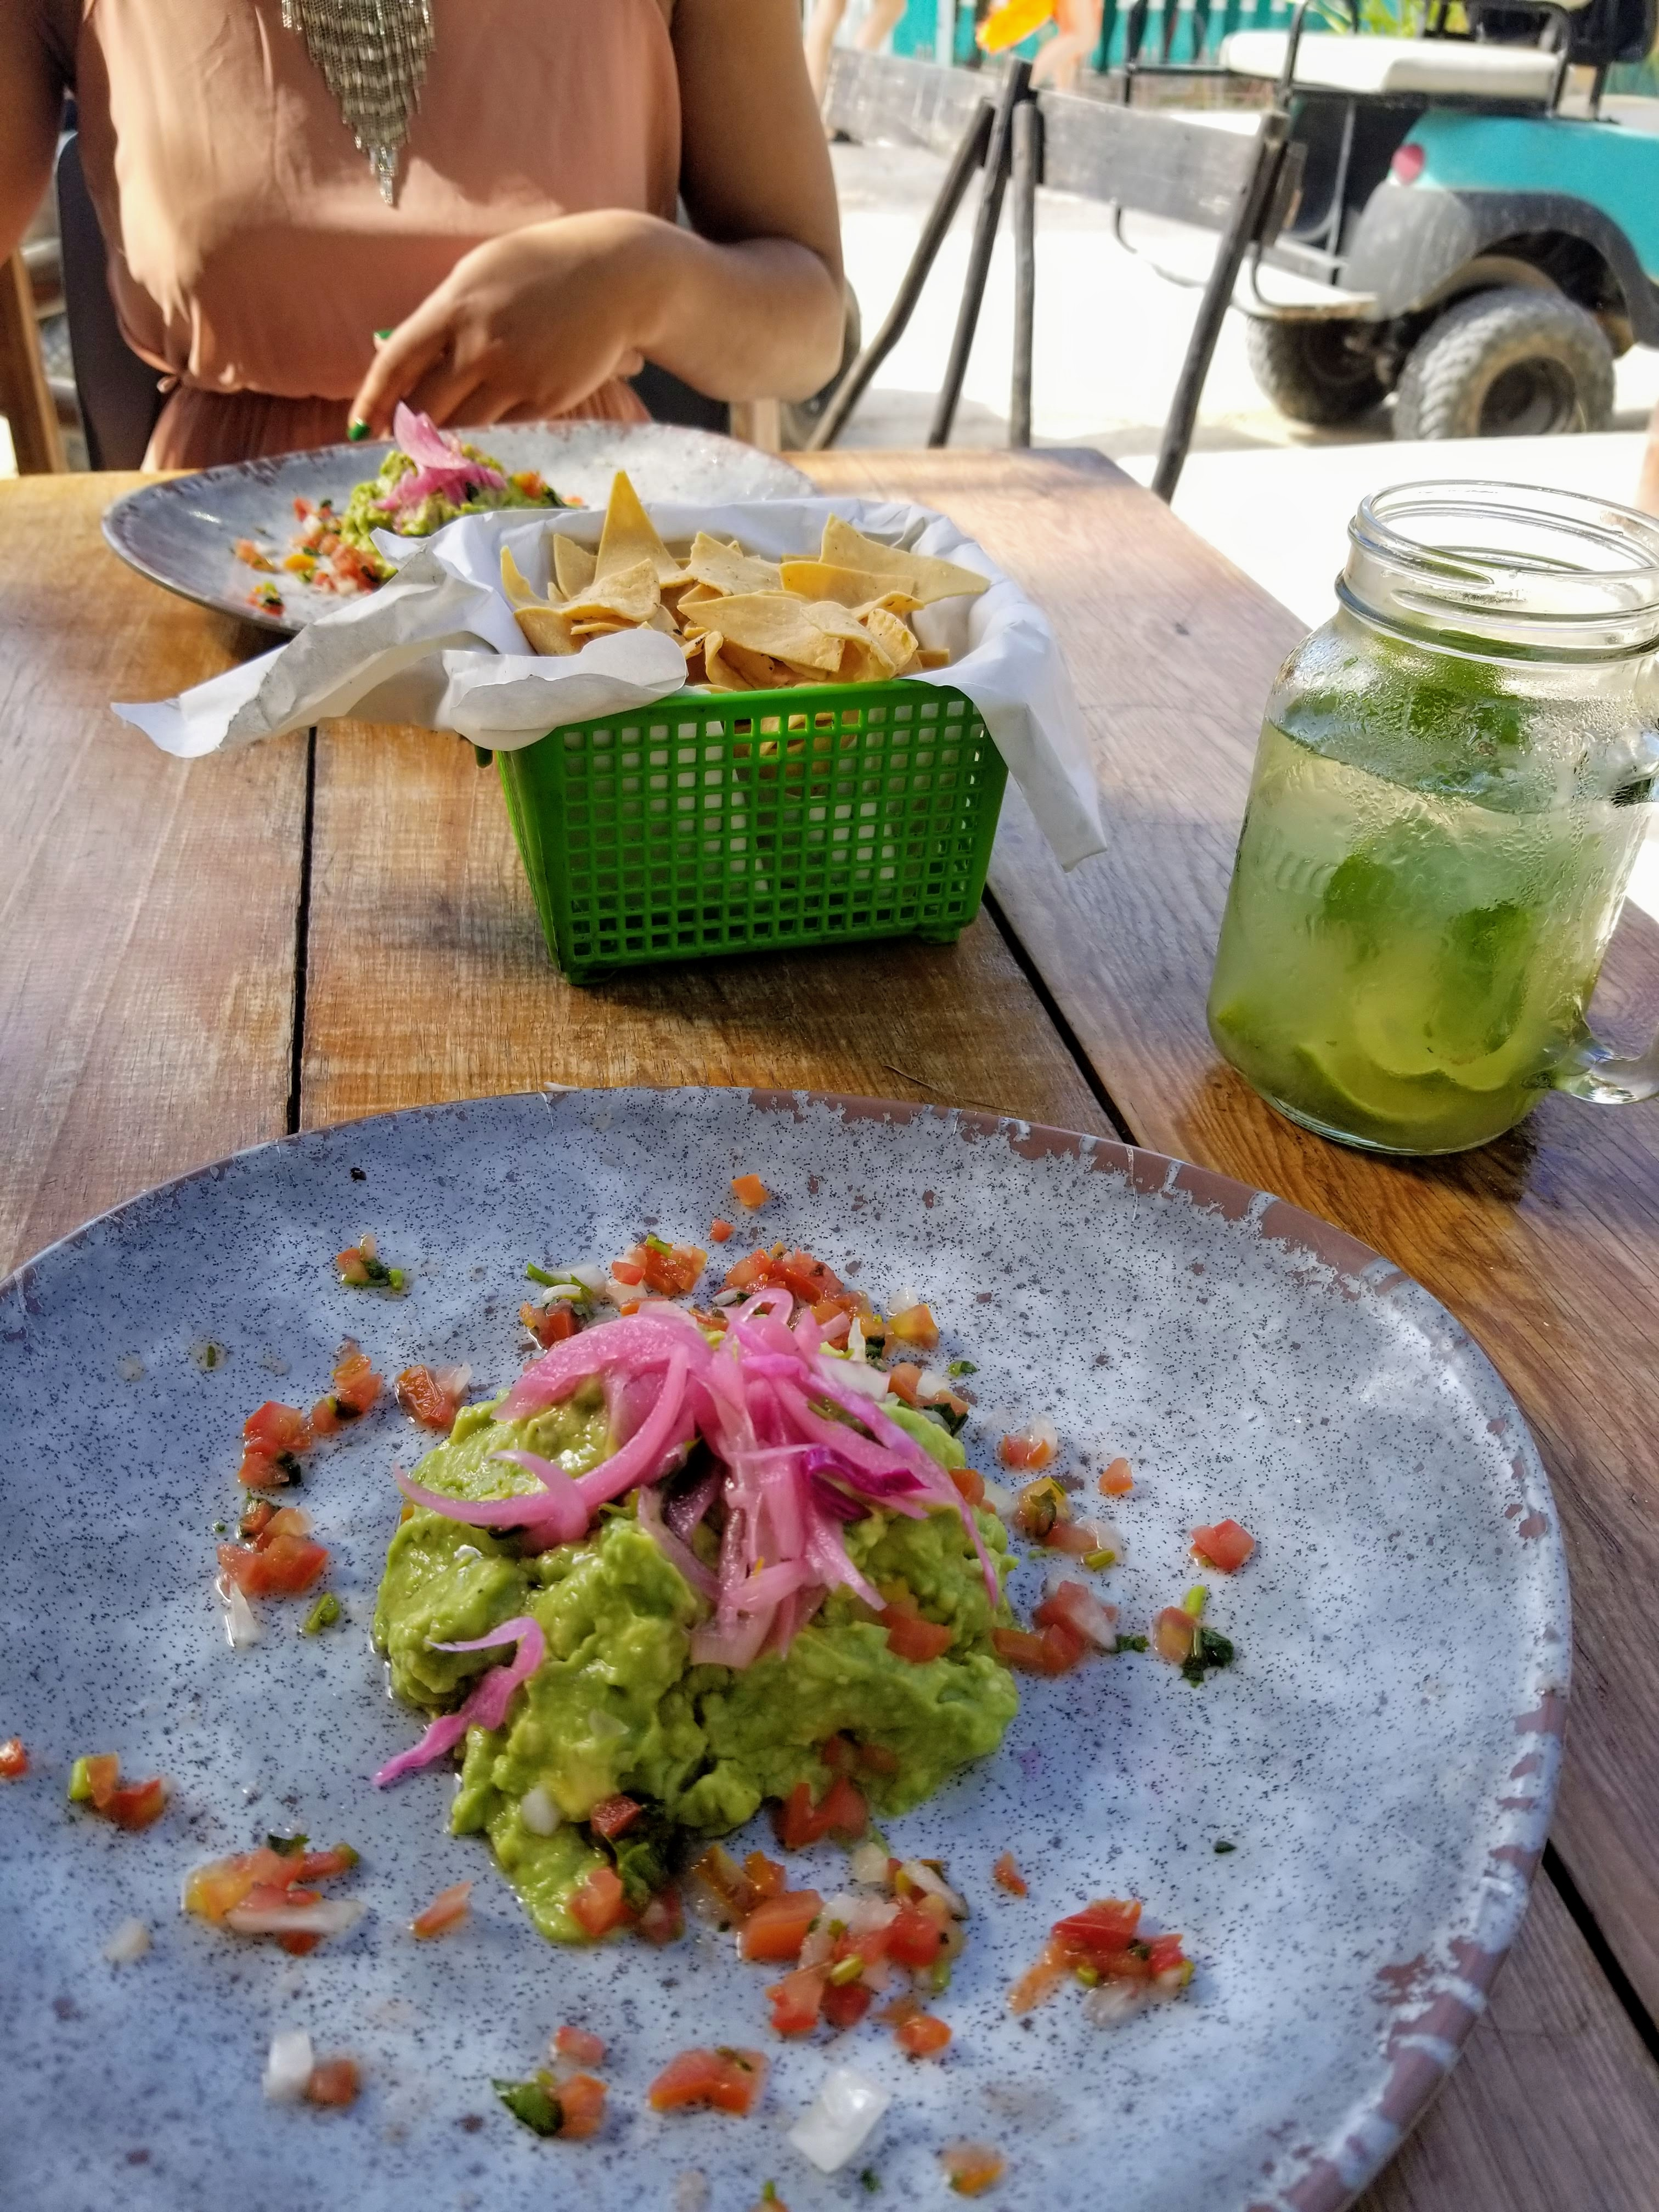 In the foreground is a large ceramic glazed plate with a beautiful mound of freshly made guacamole topped artistically with pickled onions. In the background is a basket of fresh made tortilla strips and a mojito.